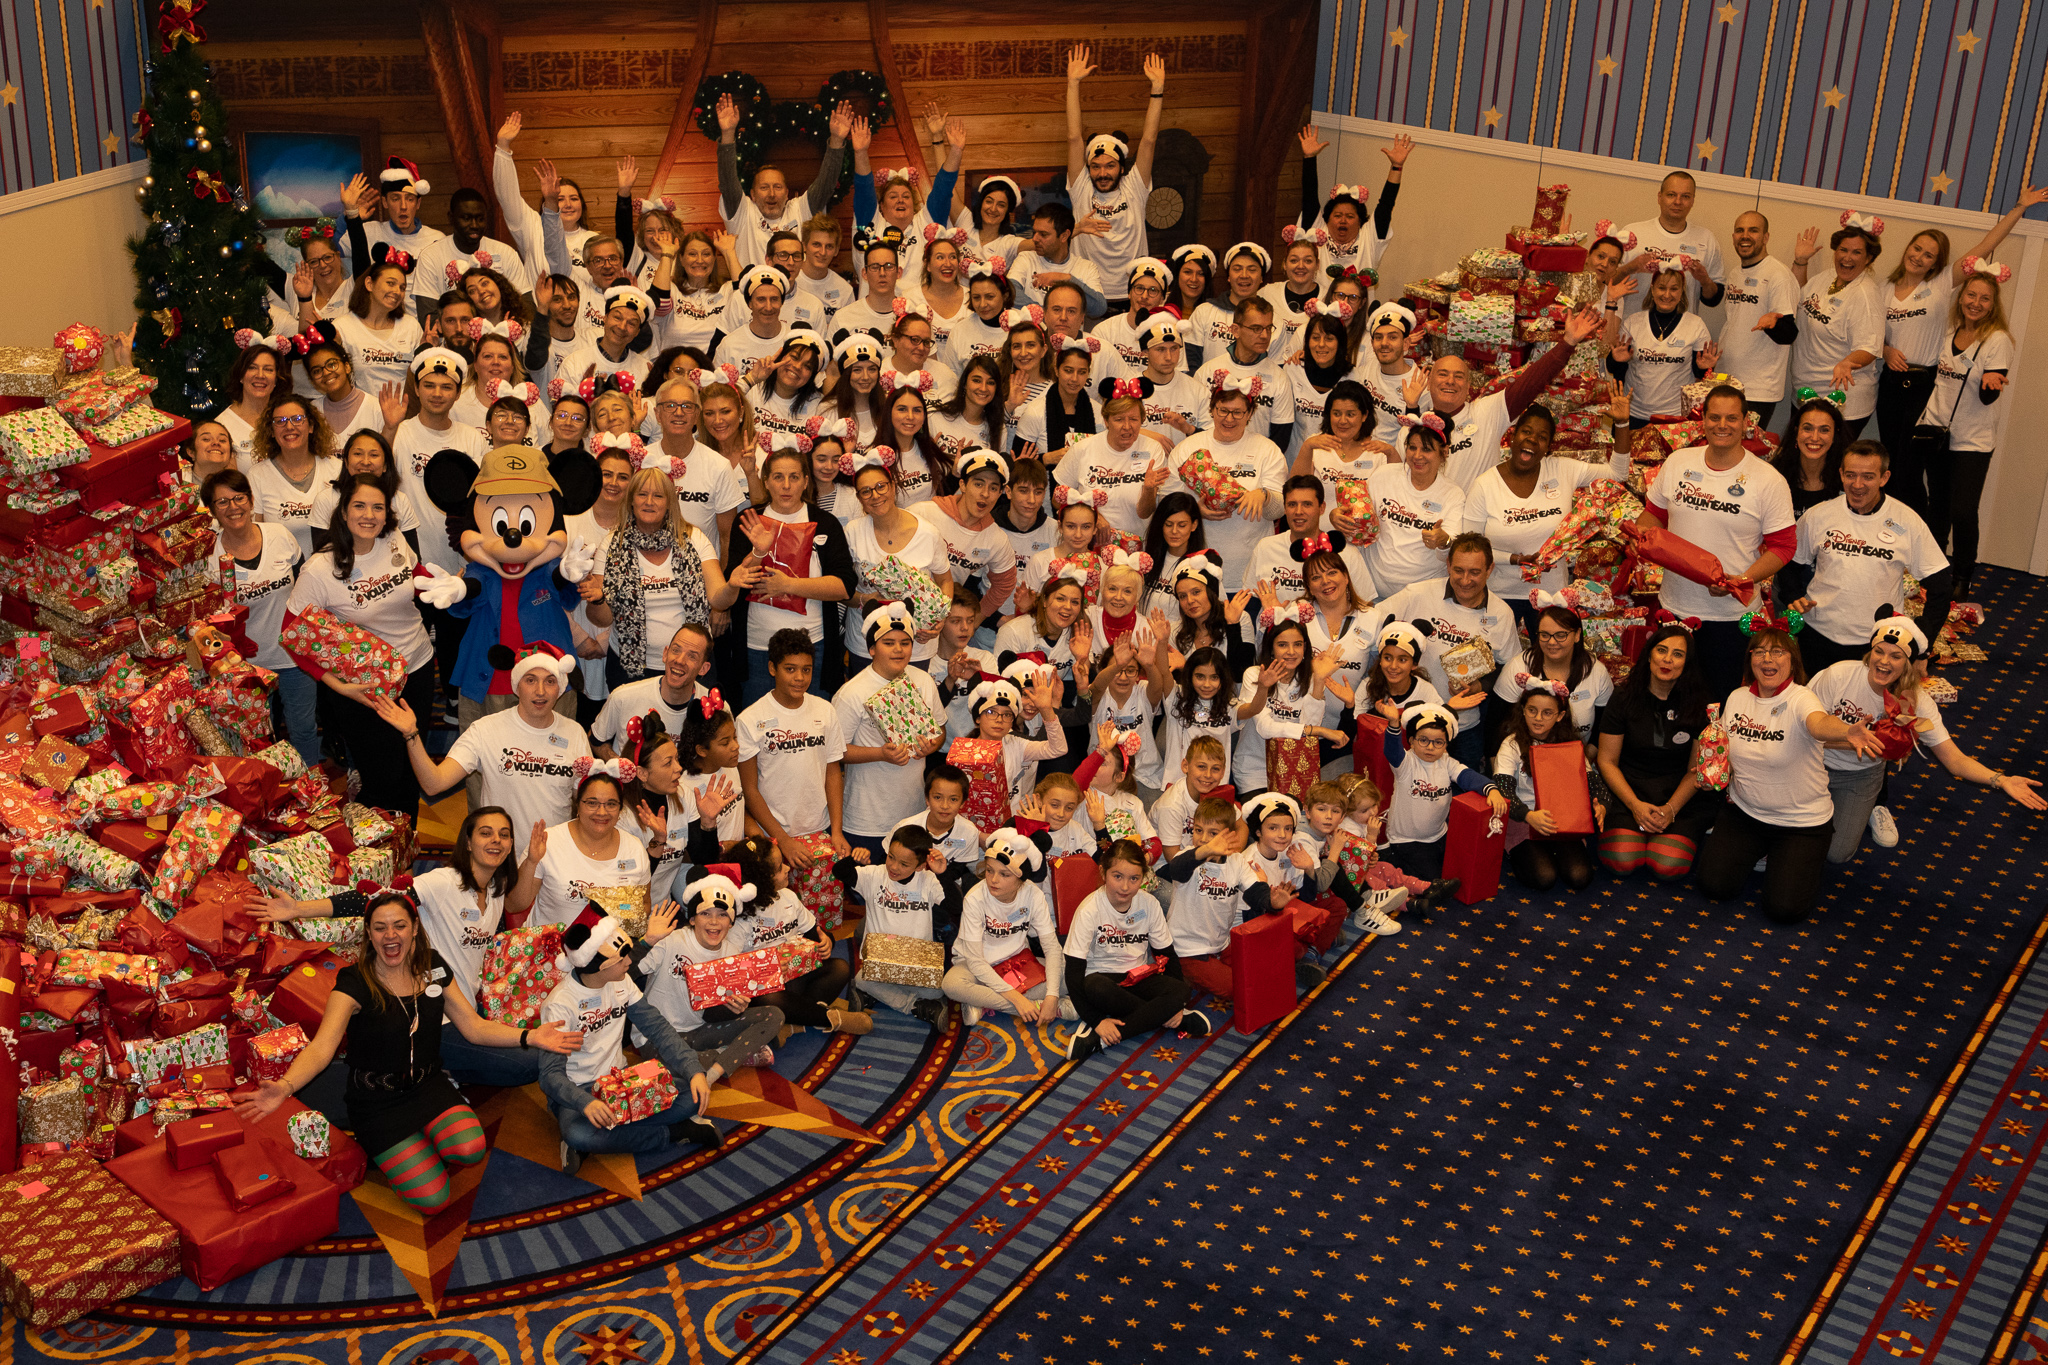 120 Disney VoluntEARS and family